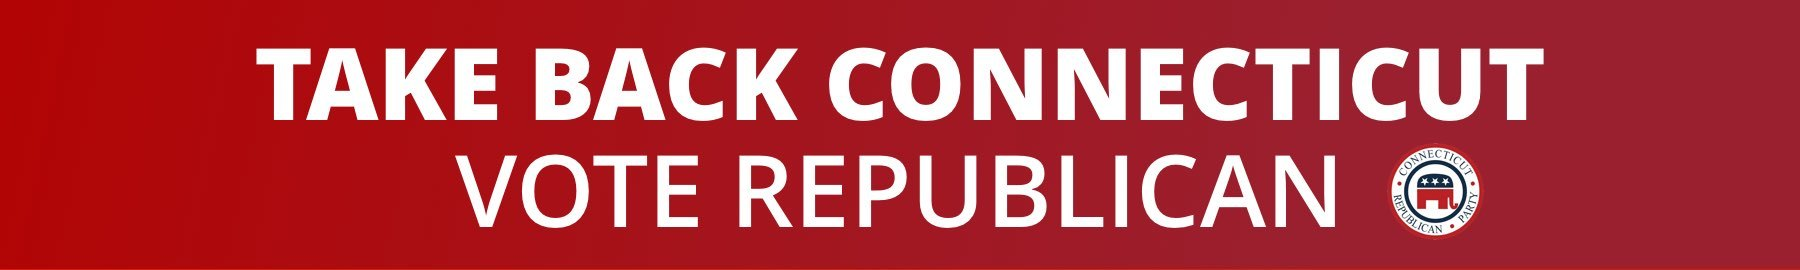 Connecticut Republicans: Take Back Connecticut